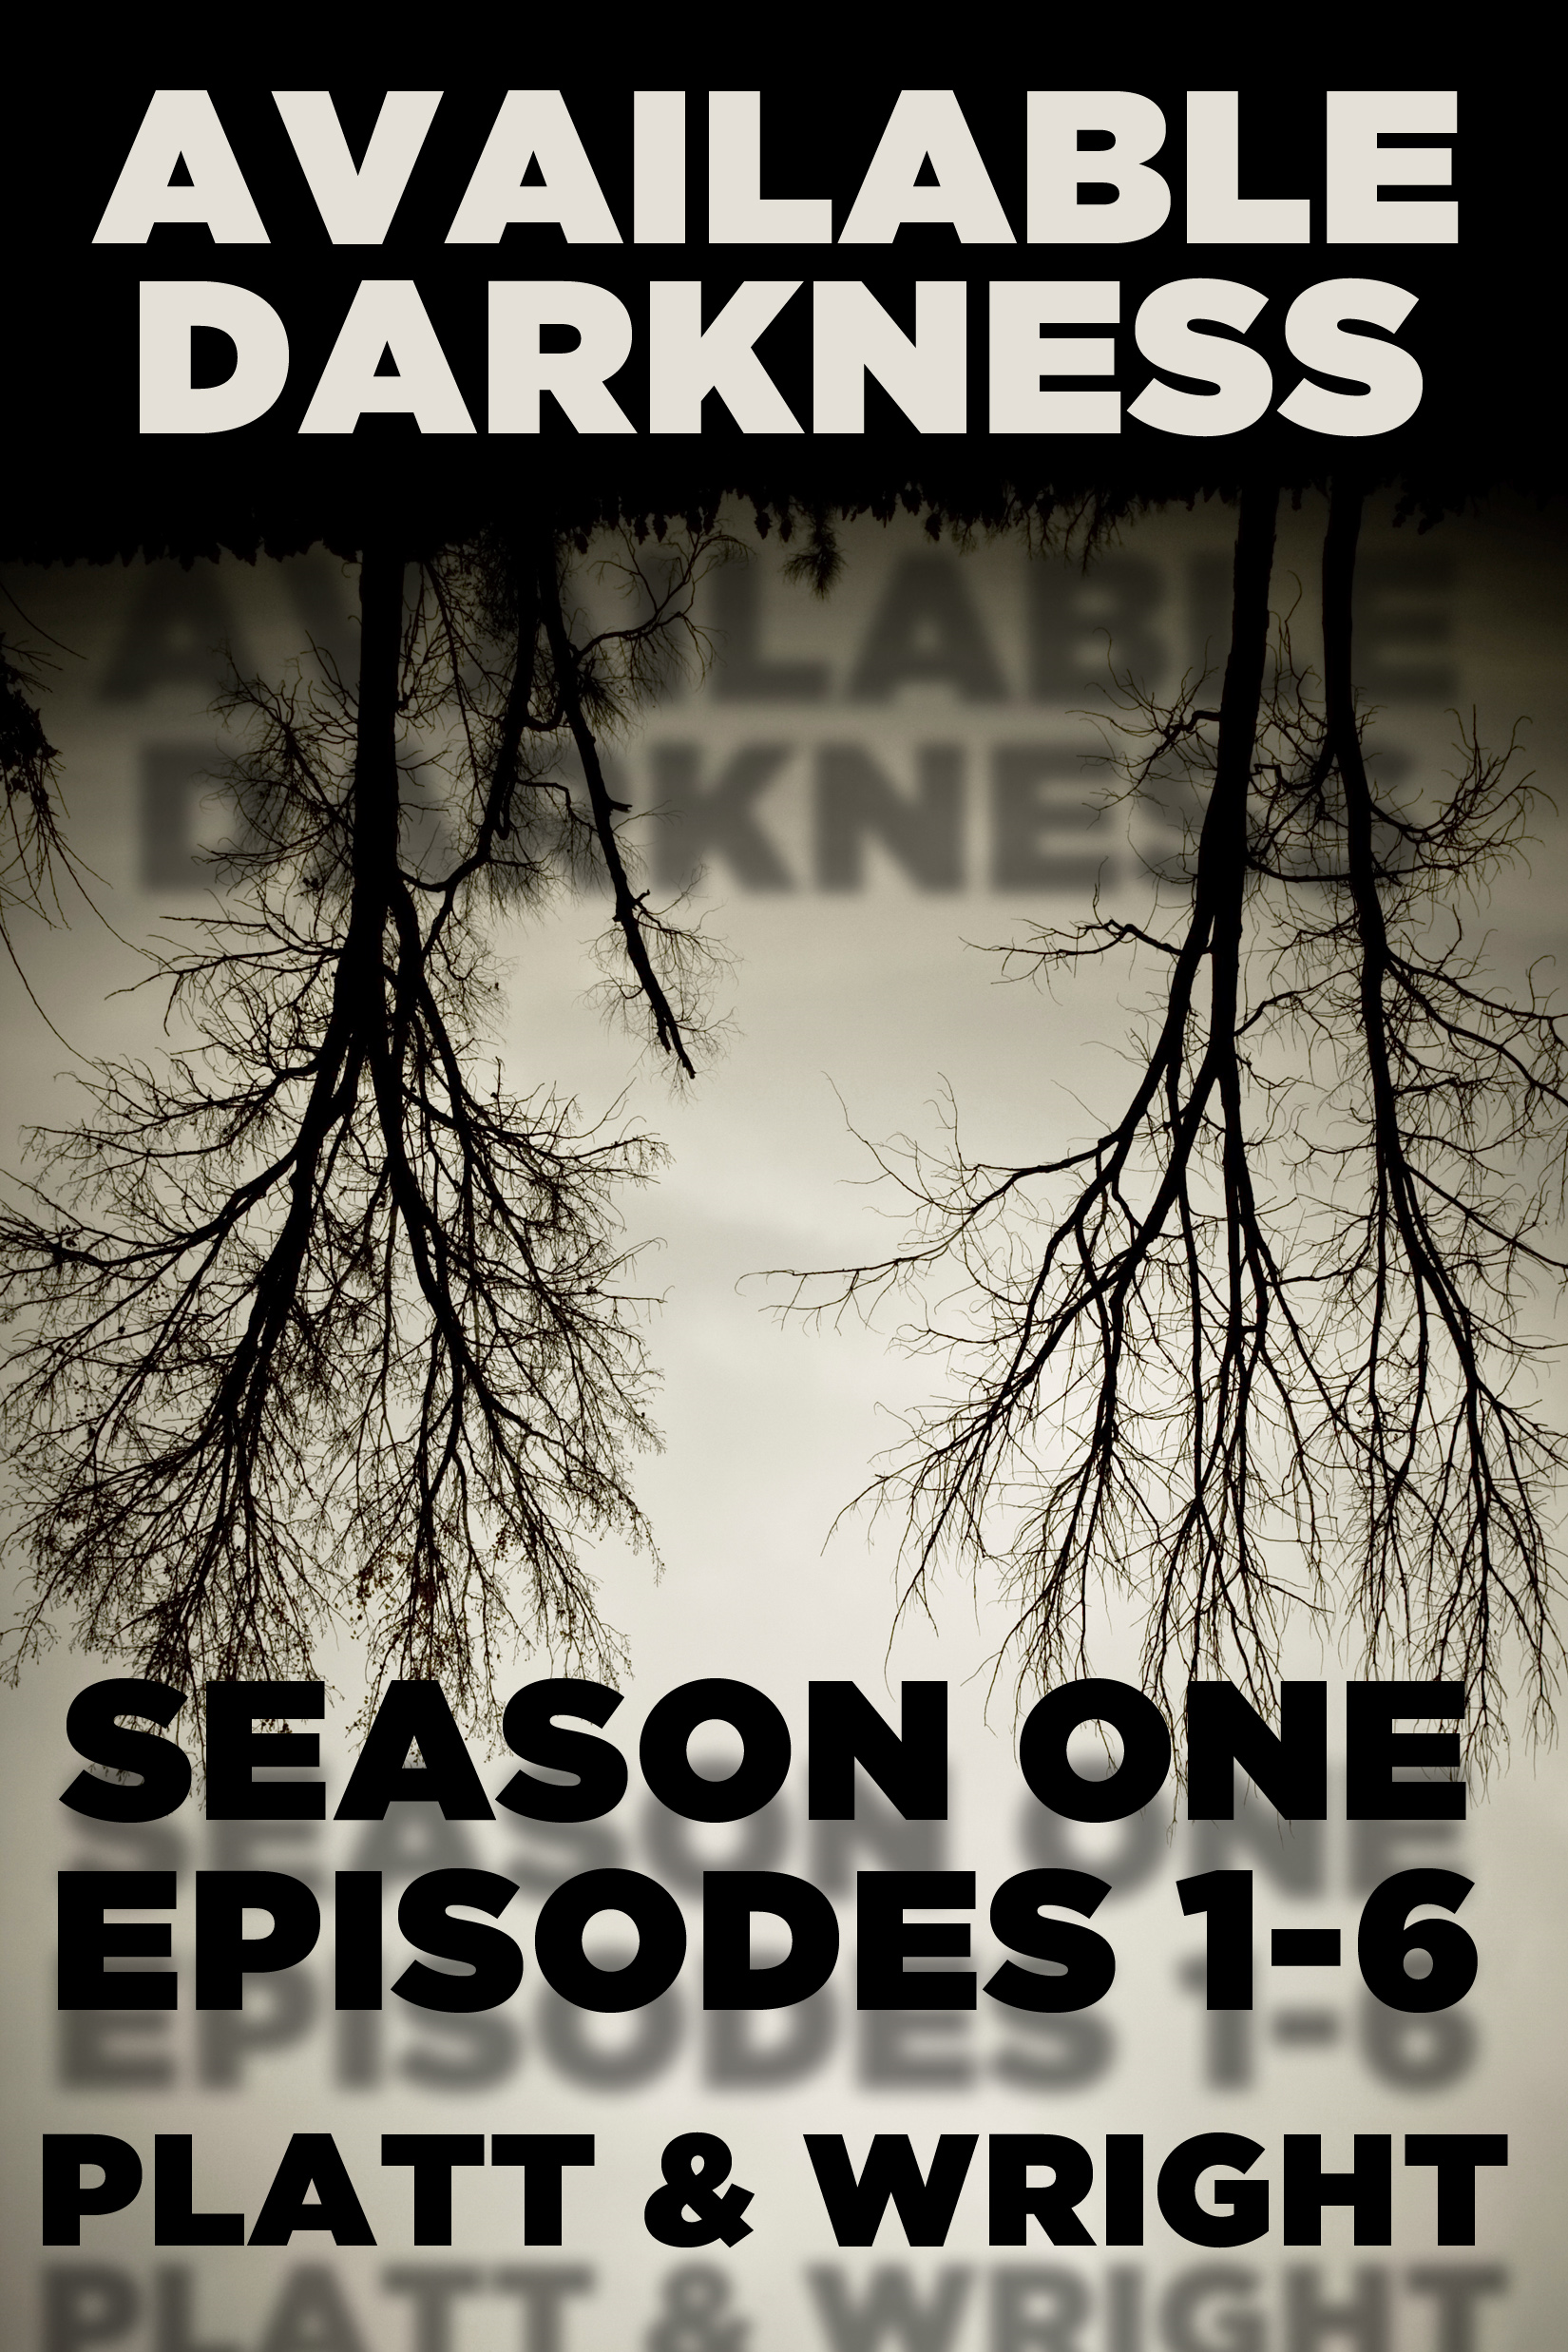 Available Darkness: Season One